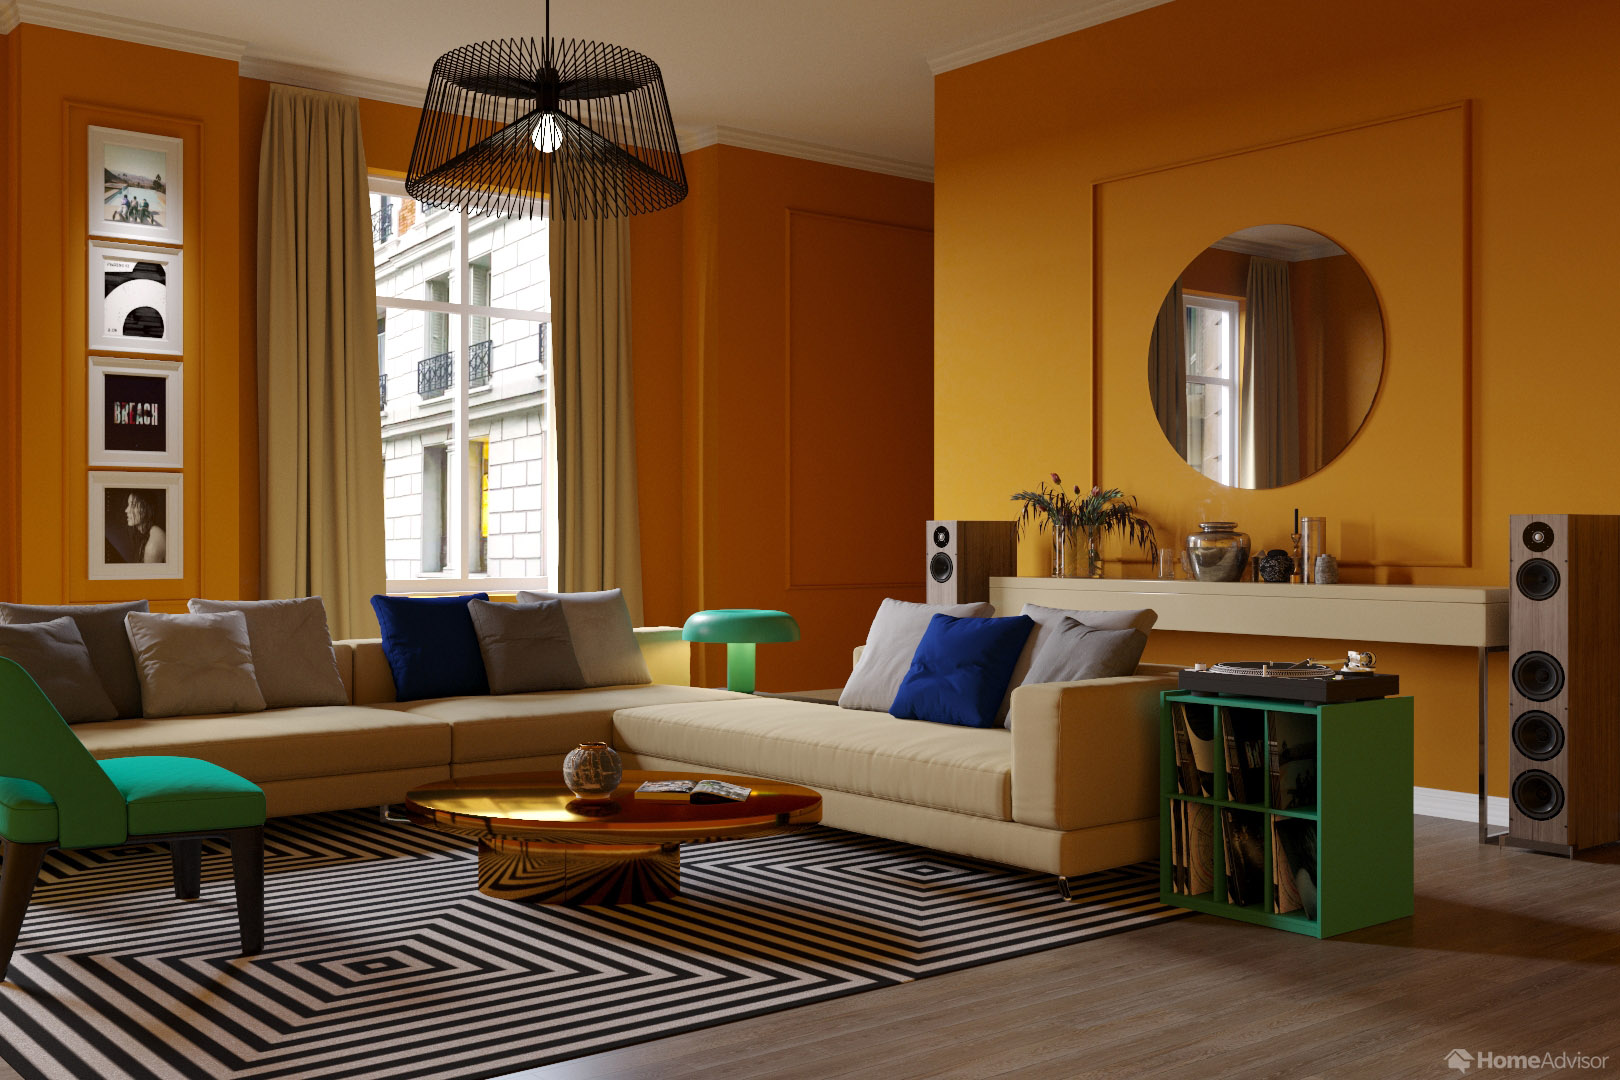 How to choose your interior colour scheme according to your favourite music